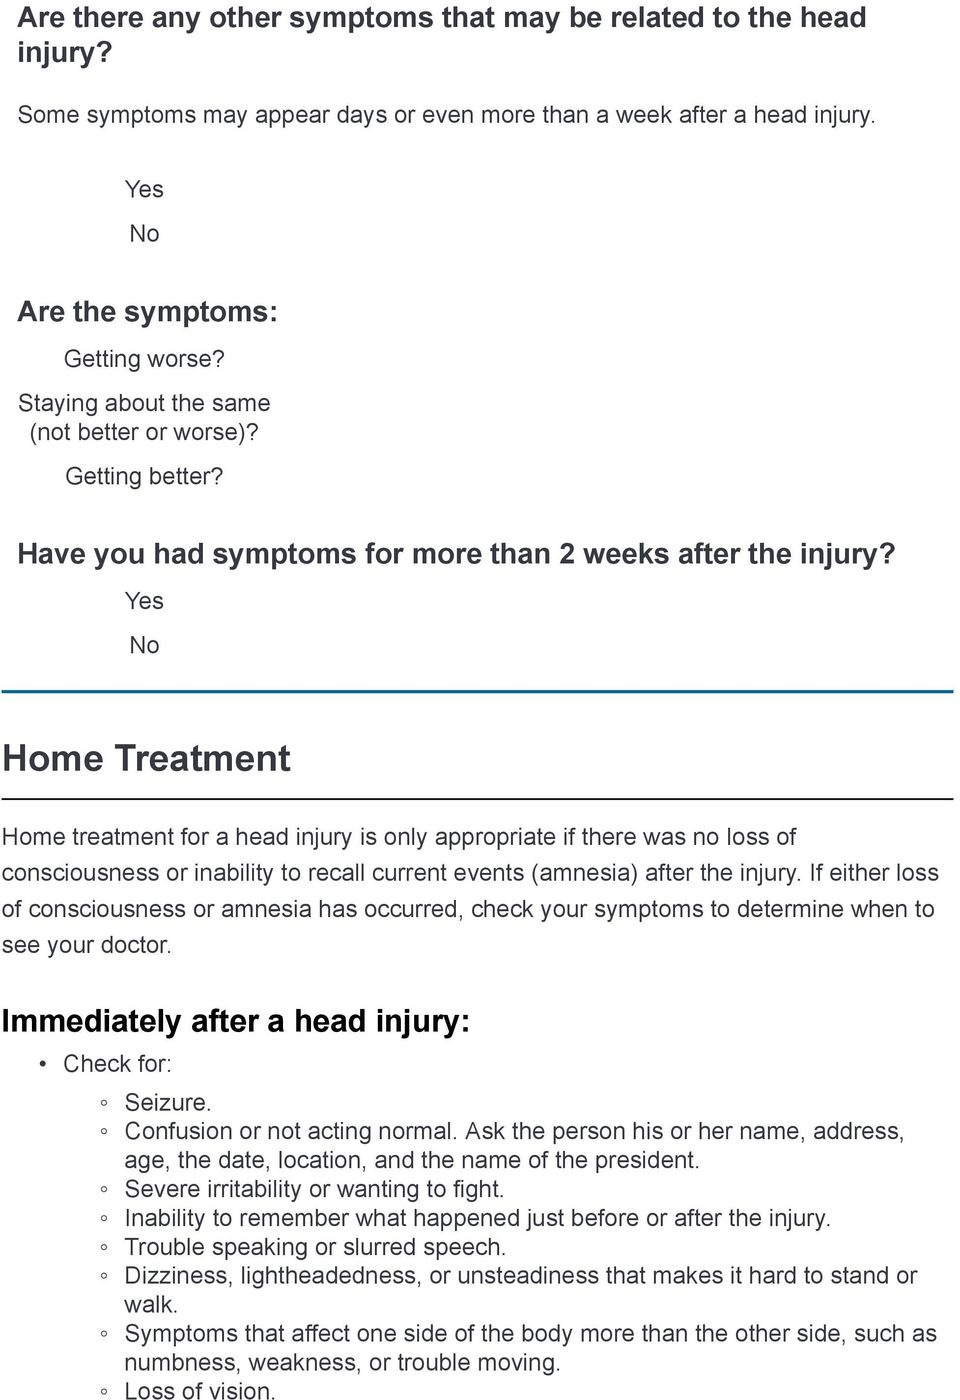 Home Treatment Home treatment for a head injury is only appropriate if there was no loss of consciousness or inability to recall current events (amnesia) after the injury.